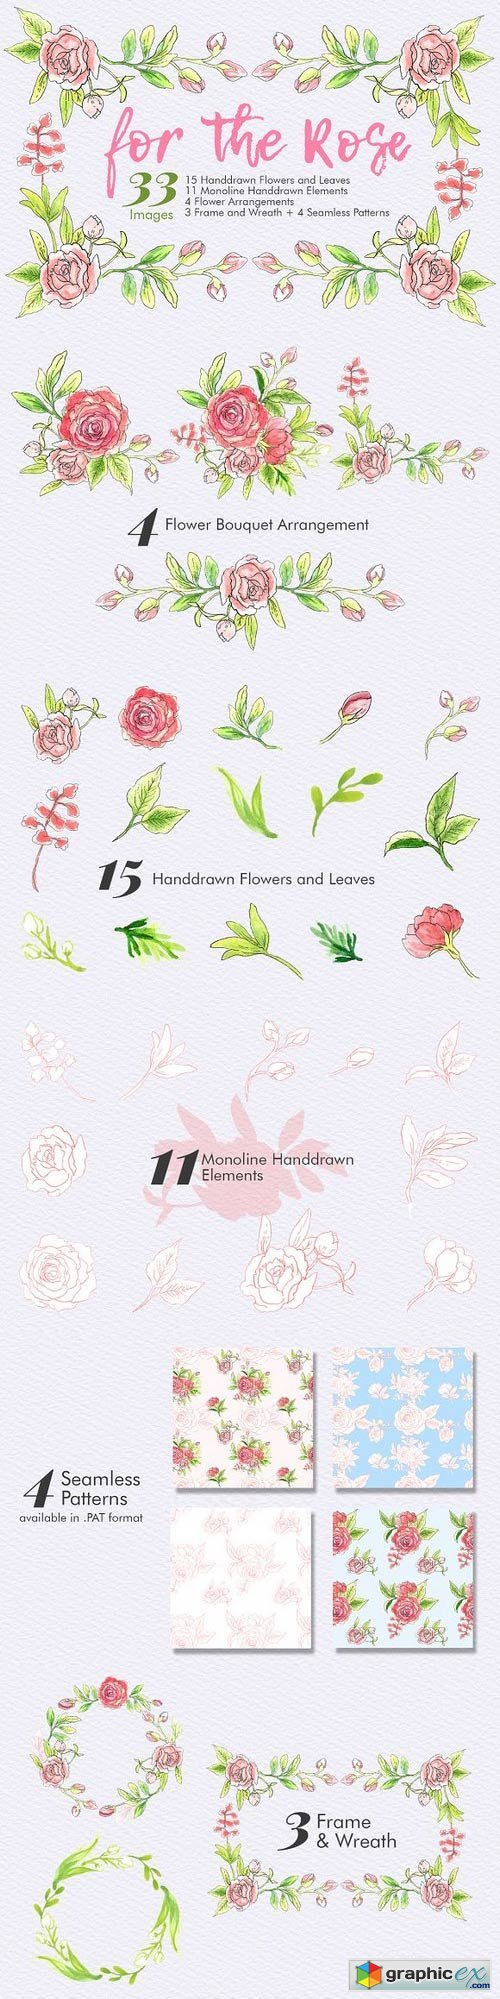 For The Rose - Handdrawn Flowers